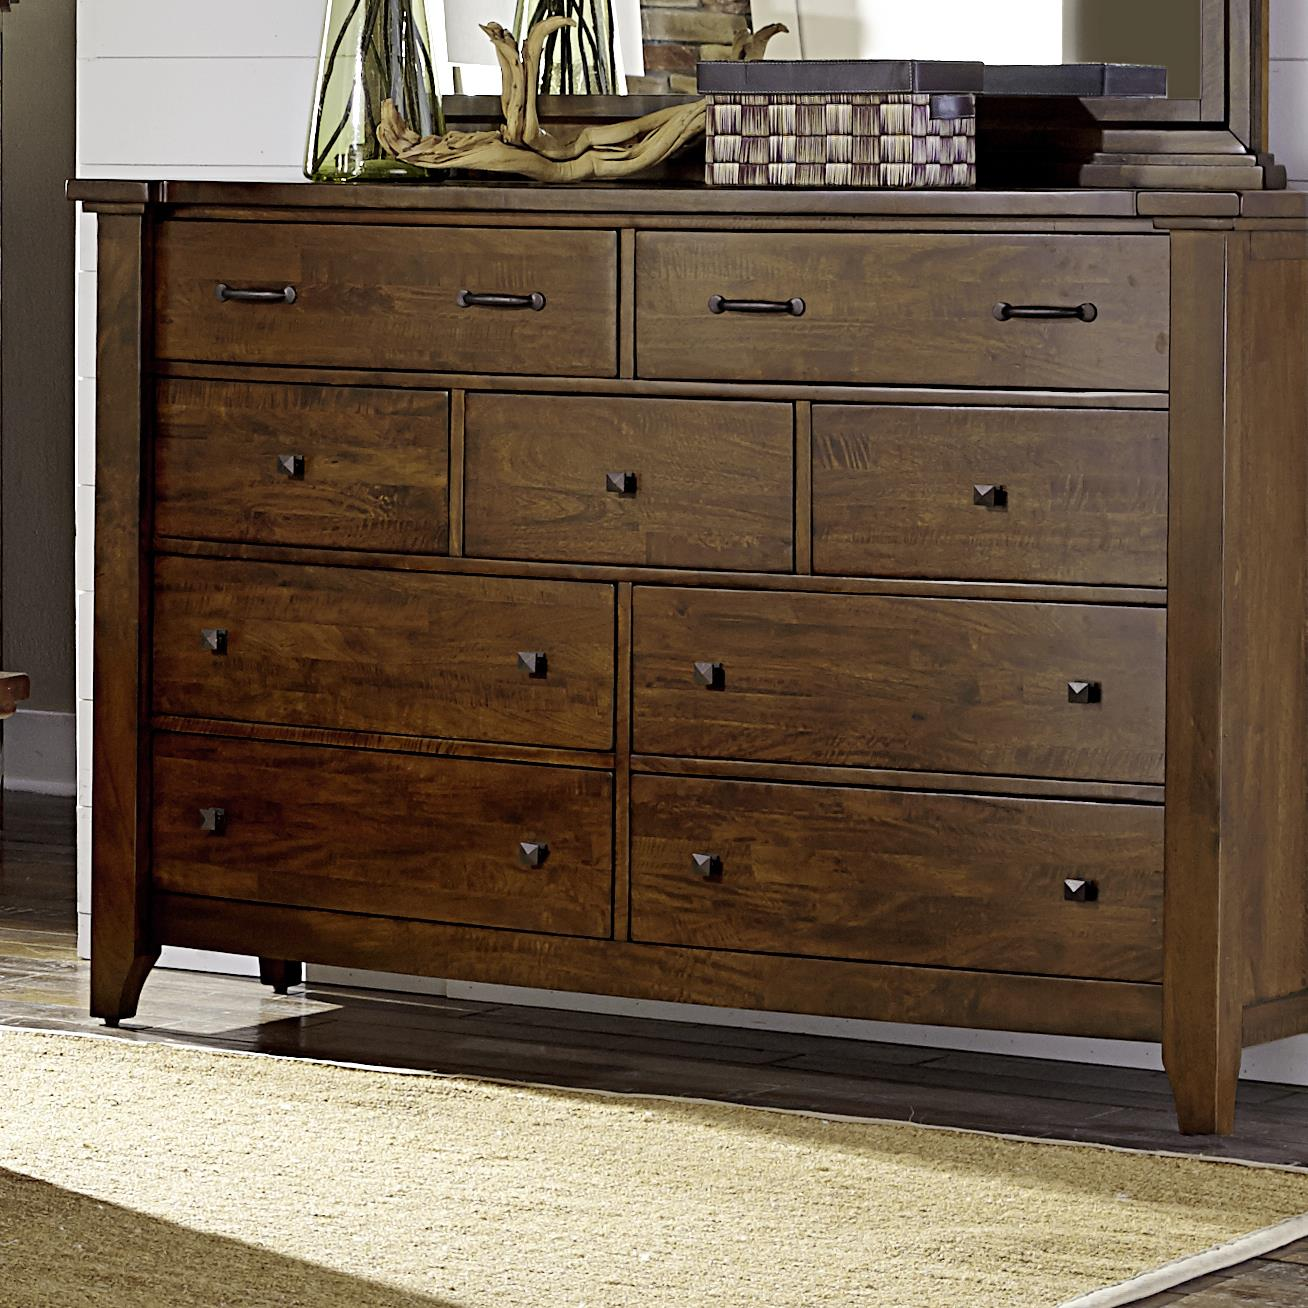 Napa furniture designs whistler retreat solid mango 9 drawer chest darvin furniture dressers for Napa valley bedroom furniture